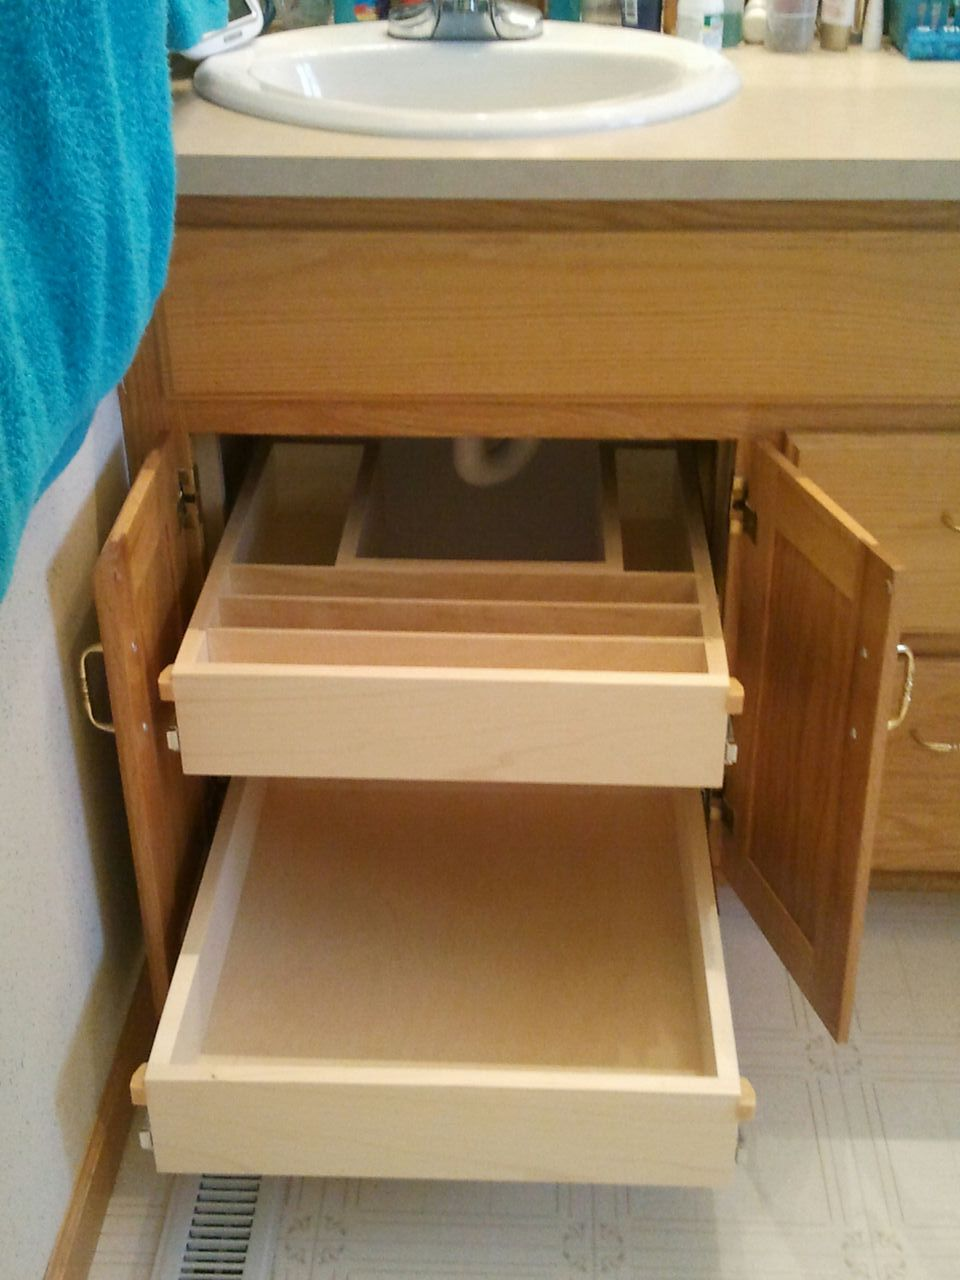 Bathroom Cabinet Roll Out Shelves